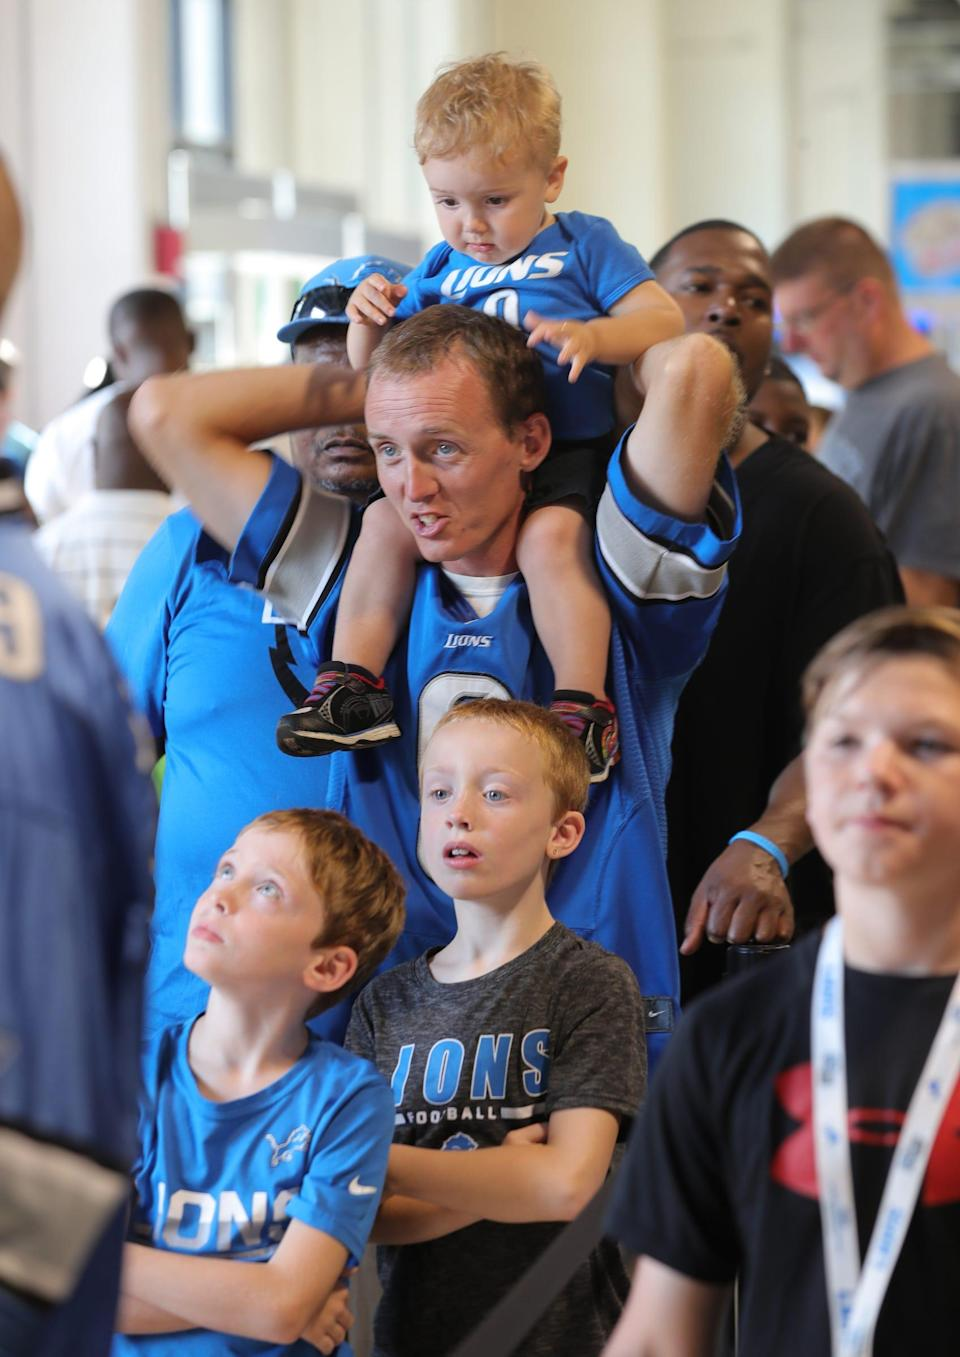 Mike Roberston and his sons, Levi 1, Aiden, 8, and Daniel, 7, wait in line during Detroit Lions practice at Family Fest, Friday, August 2, 2019 at Ford Field.